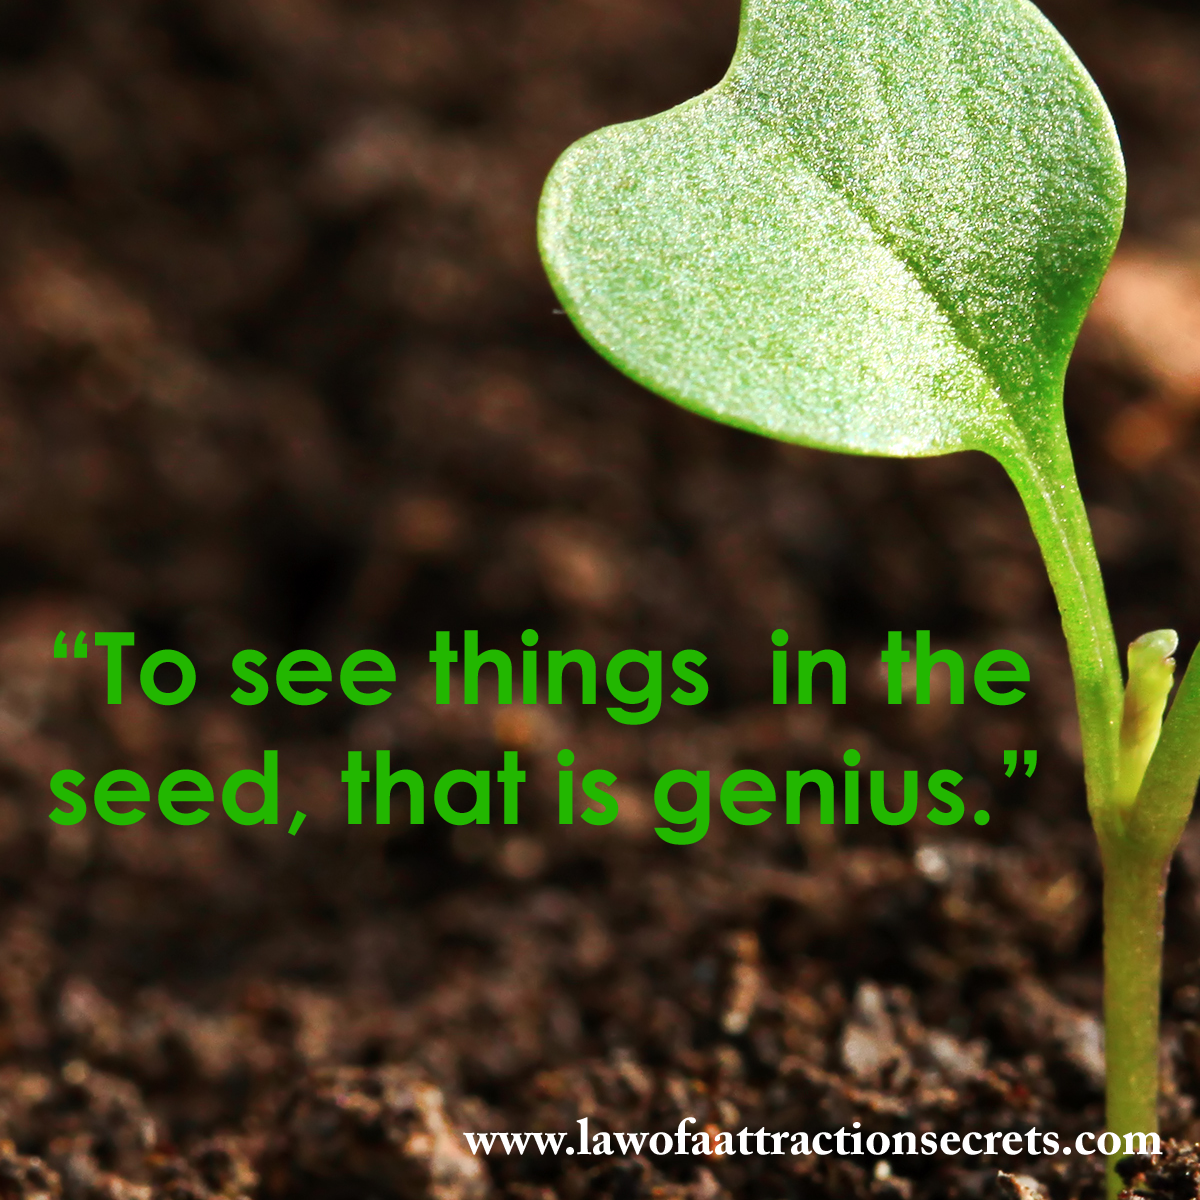 To see things in the seed, that is genius. http://t.co/OTSQAIby9u http://t.co/FIG4iXyjbq